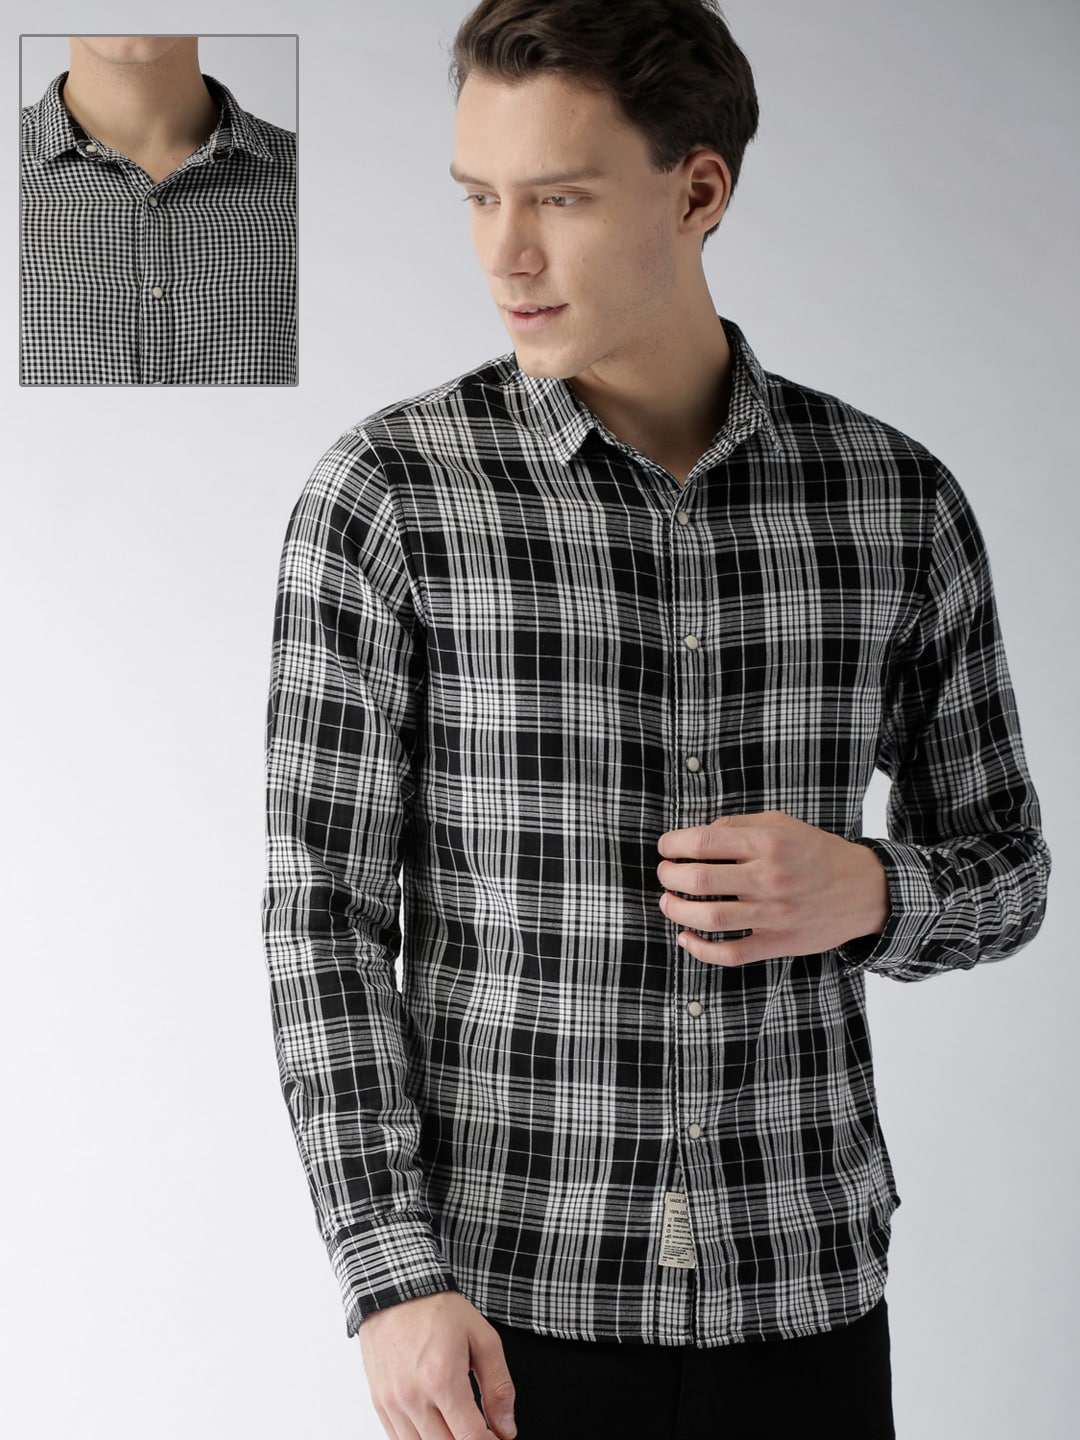 f2b700d45df Men Fashion Store - Buy Men Clothing